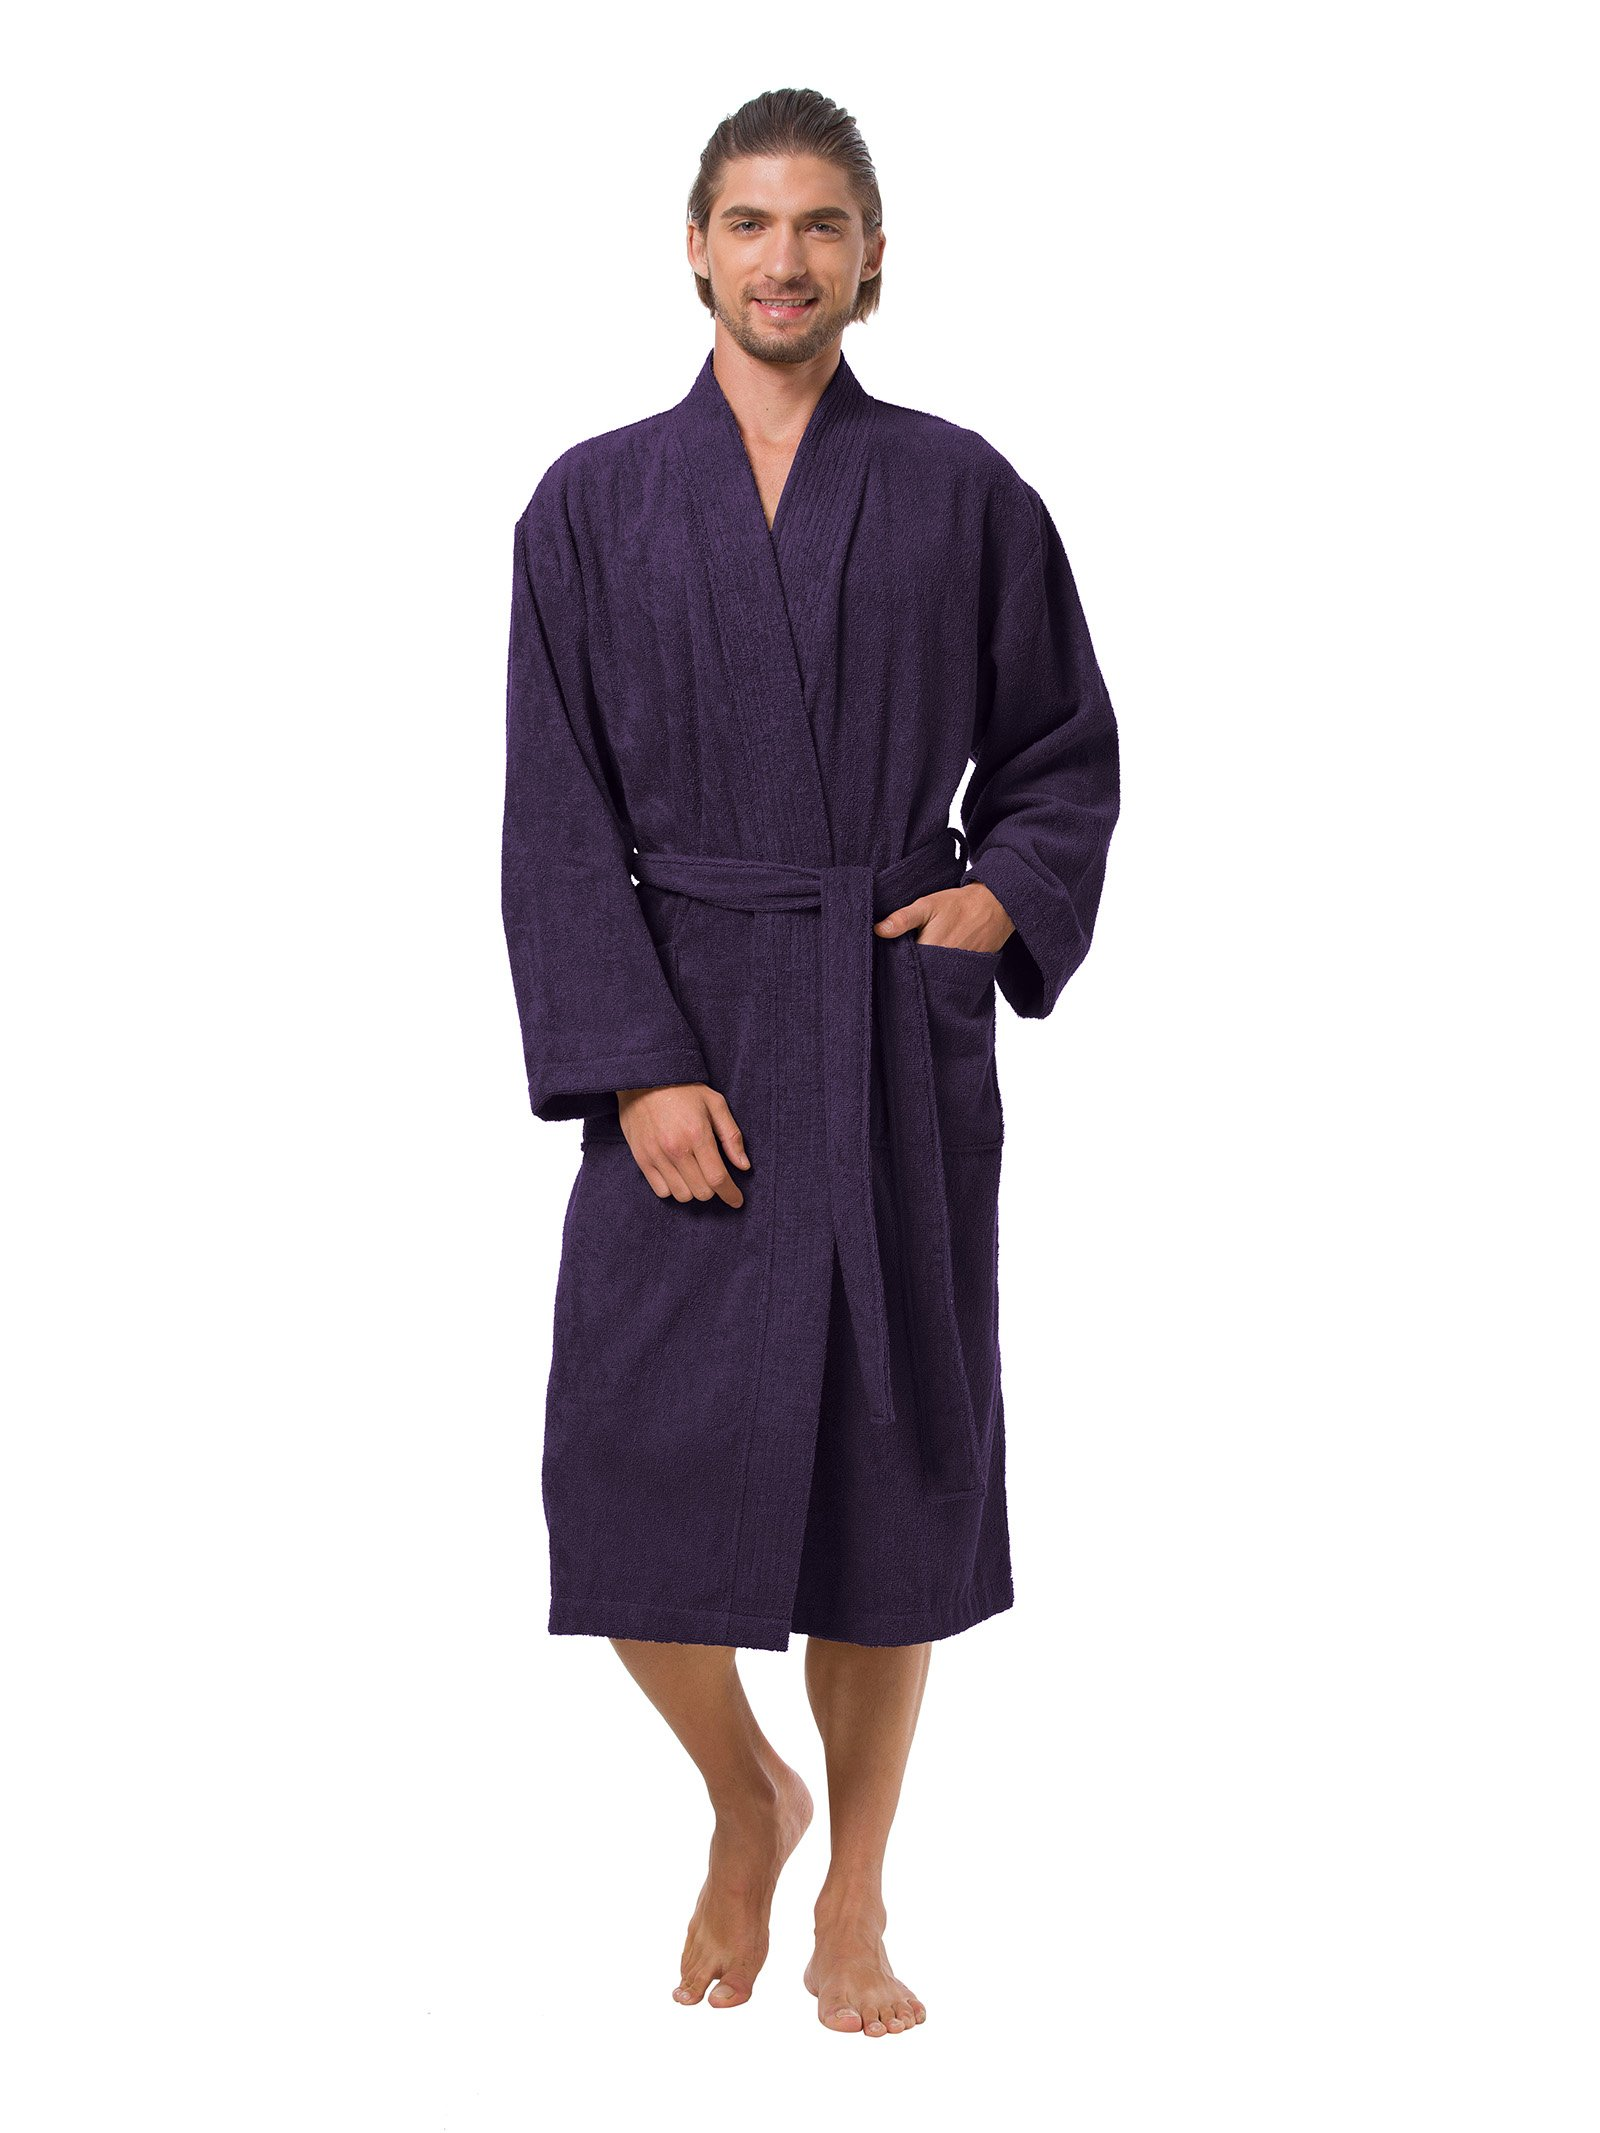 SIORO Bathrobe for Men Long Soft Cotton Robe Plus Size Pajamas Water Absorbent Spa Robe Wrap Men's Full Sleeves Sleepwear Gothic Grape XXL